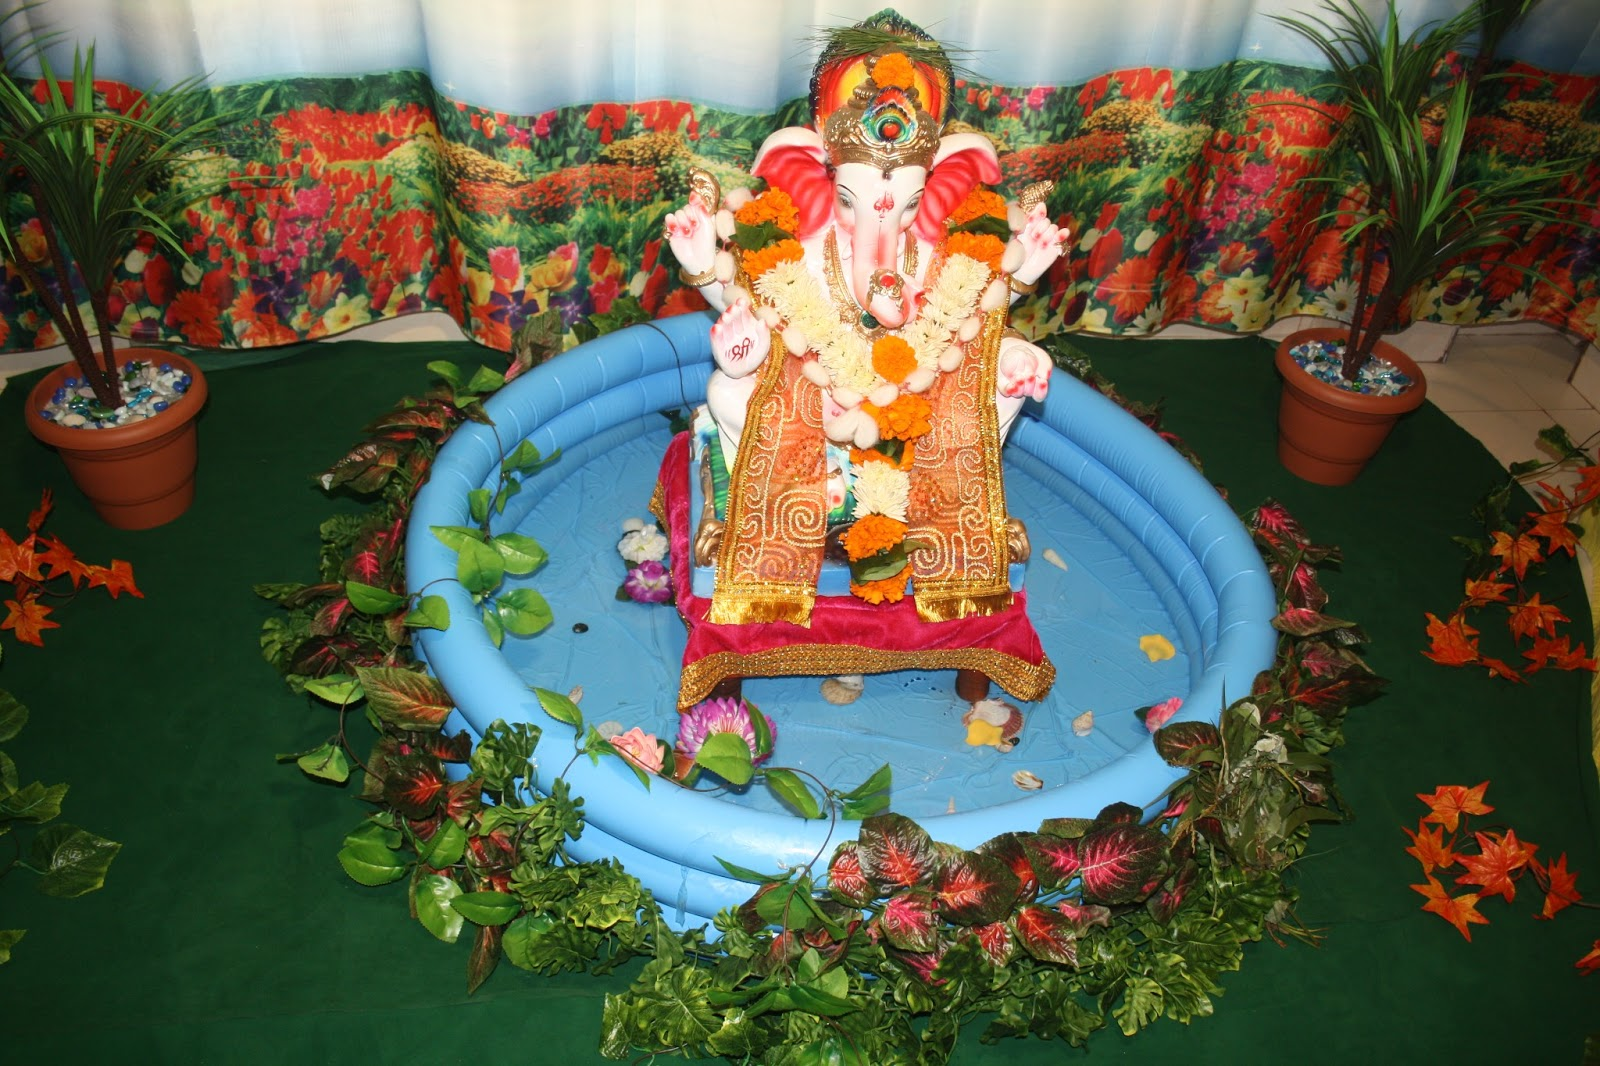 Festival dhamaal march 2013 for Background decoration for ganpati